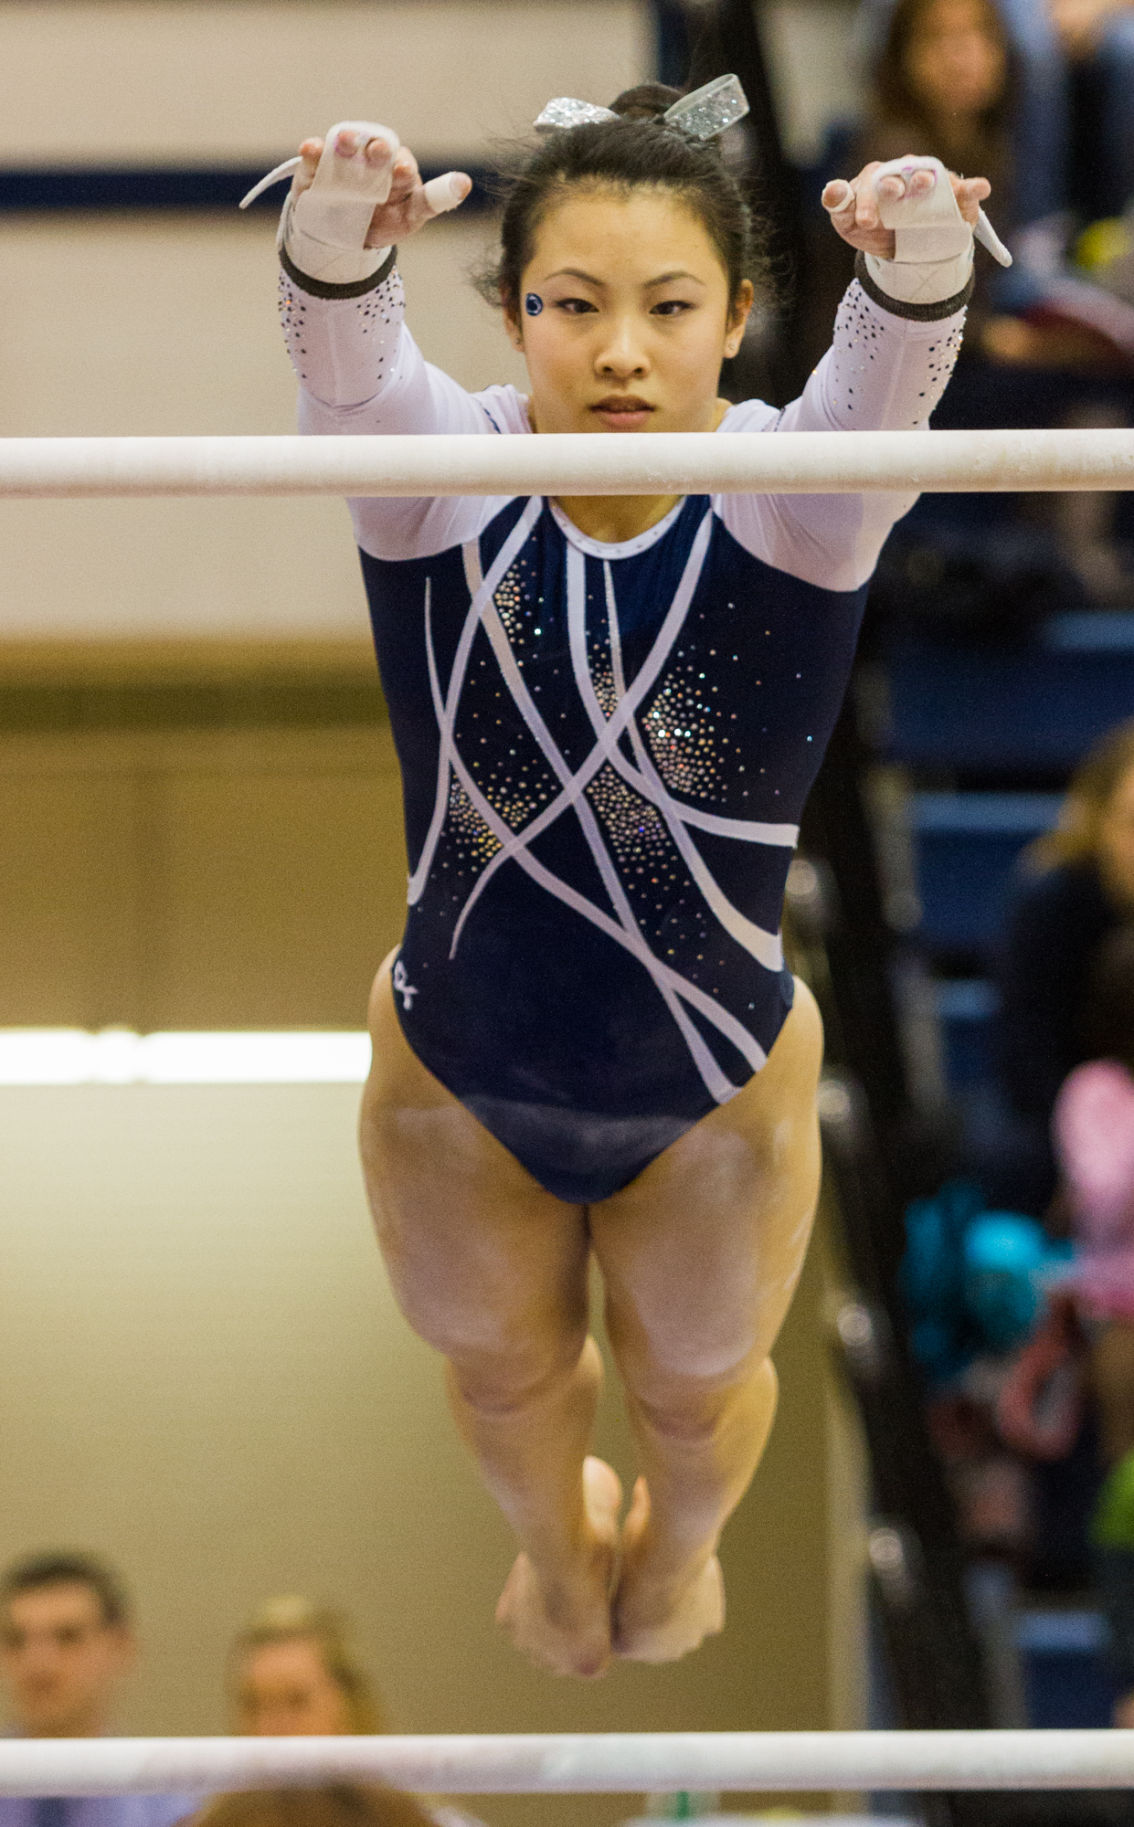 pa level 9 state gymnastics meet in michigan